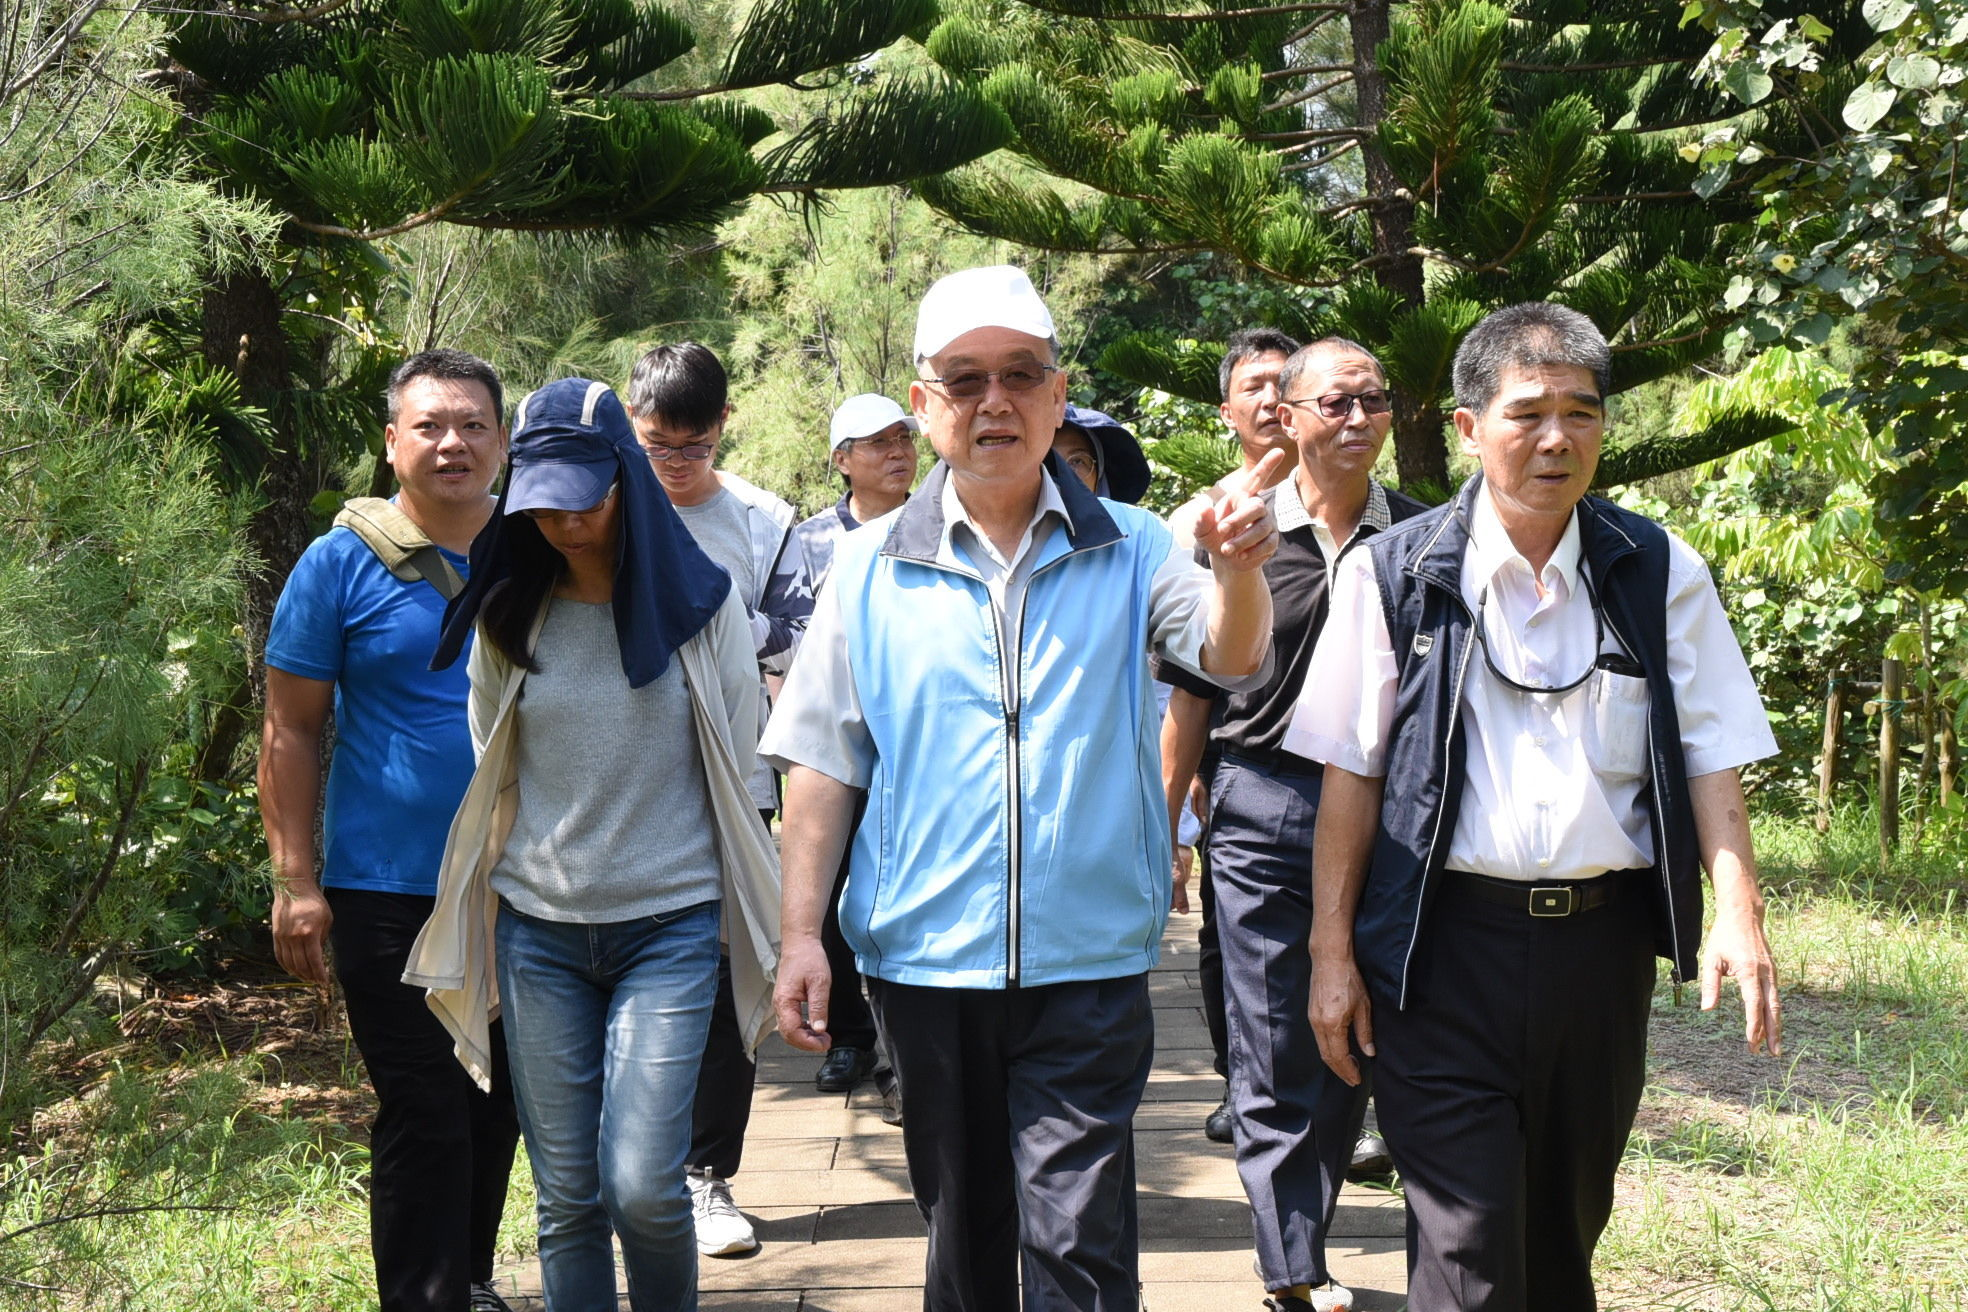 Penghu County Magistrate Lai Feng-Wei while inspecting the area planning